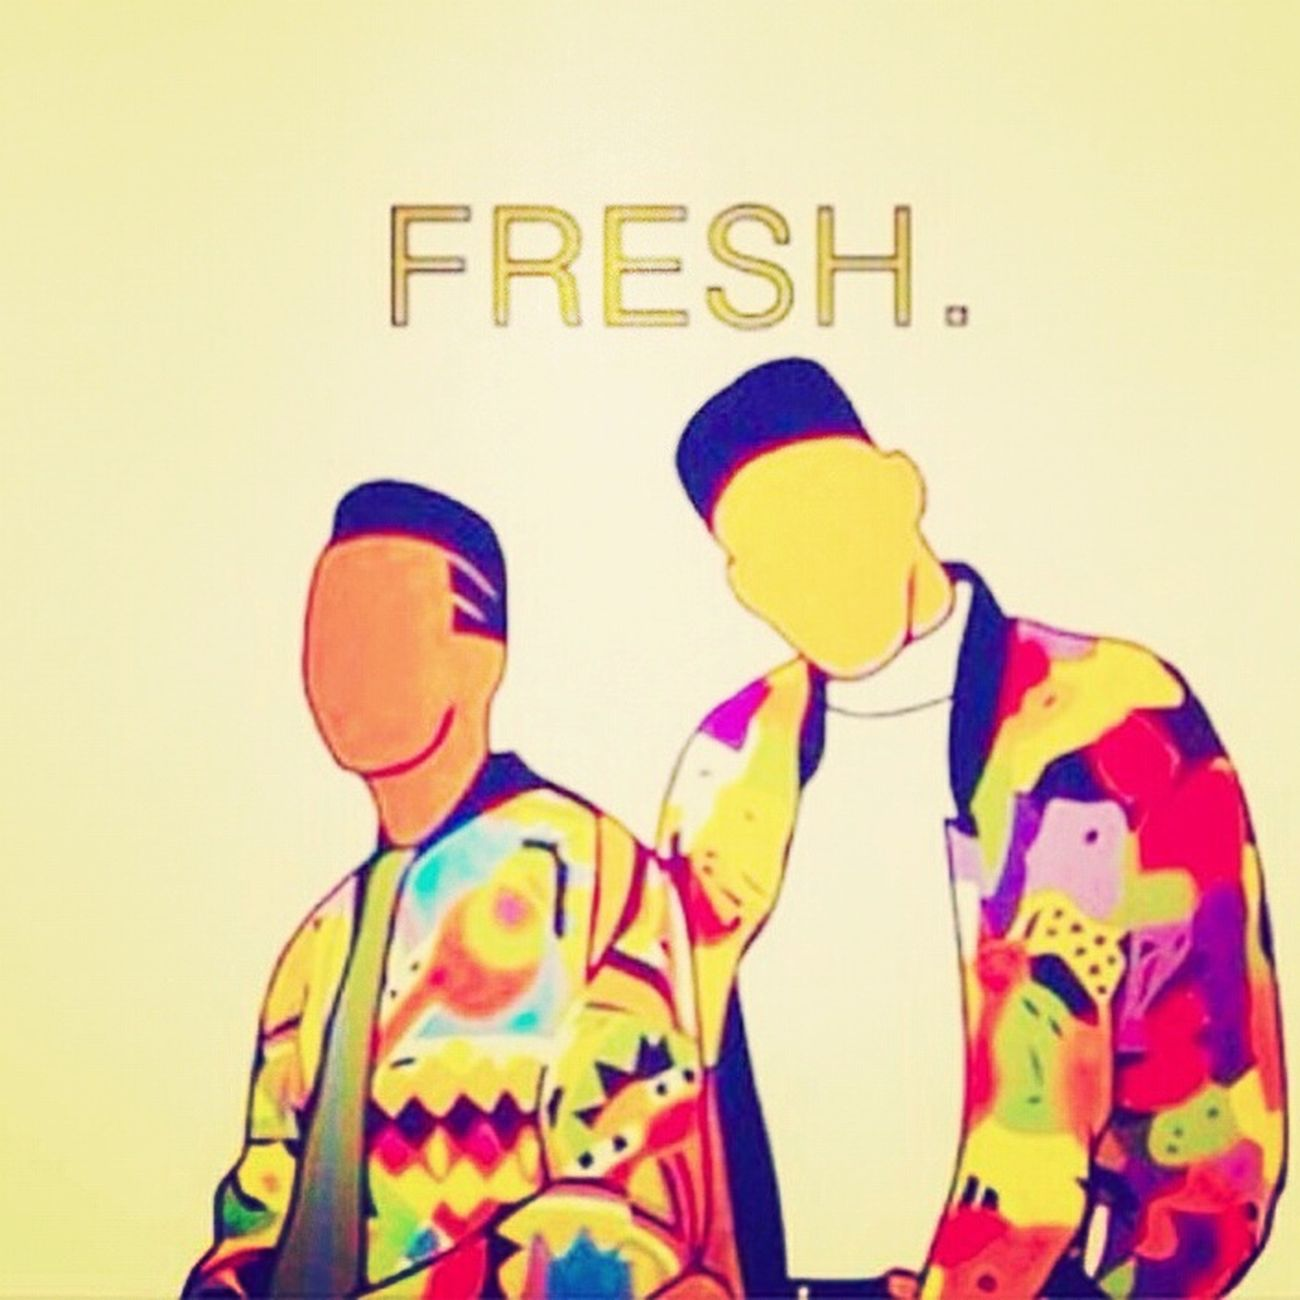 Well this is tge story of how 25yrs , 25 yrs ago, damn Freshprinceofbellair Will Carlton Djjazzyjeff ♥ Itsnotunusual Tomjones Dance Favorite ;)